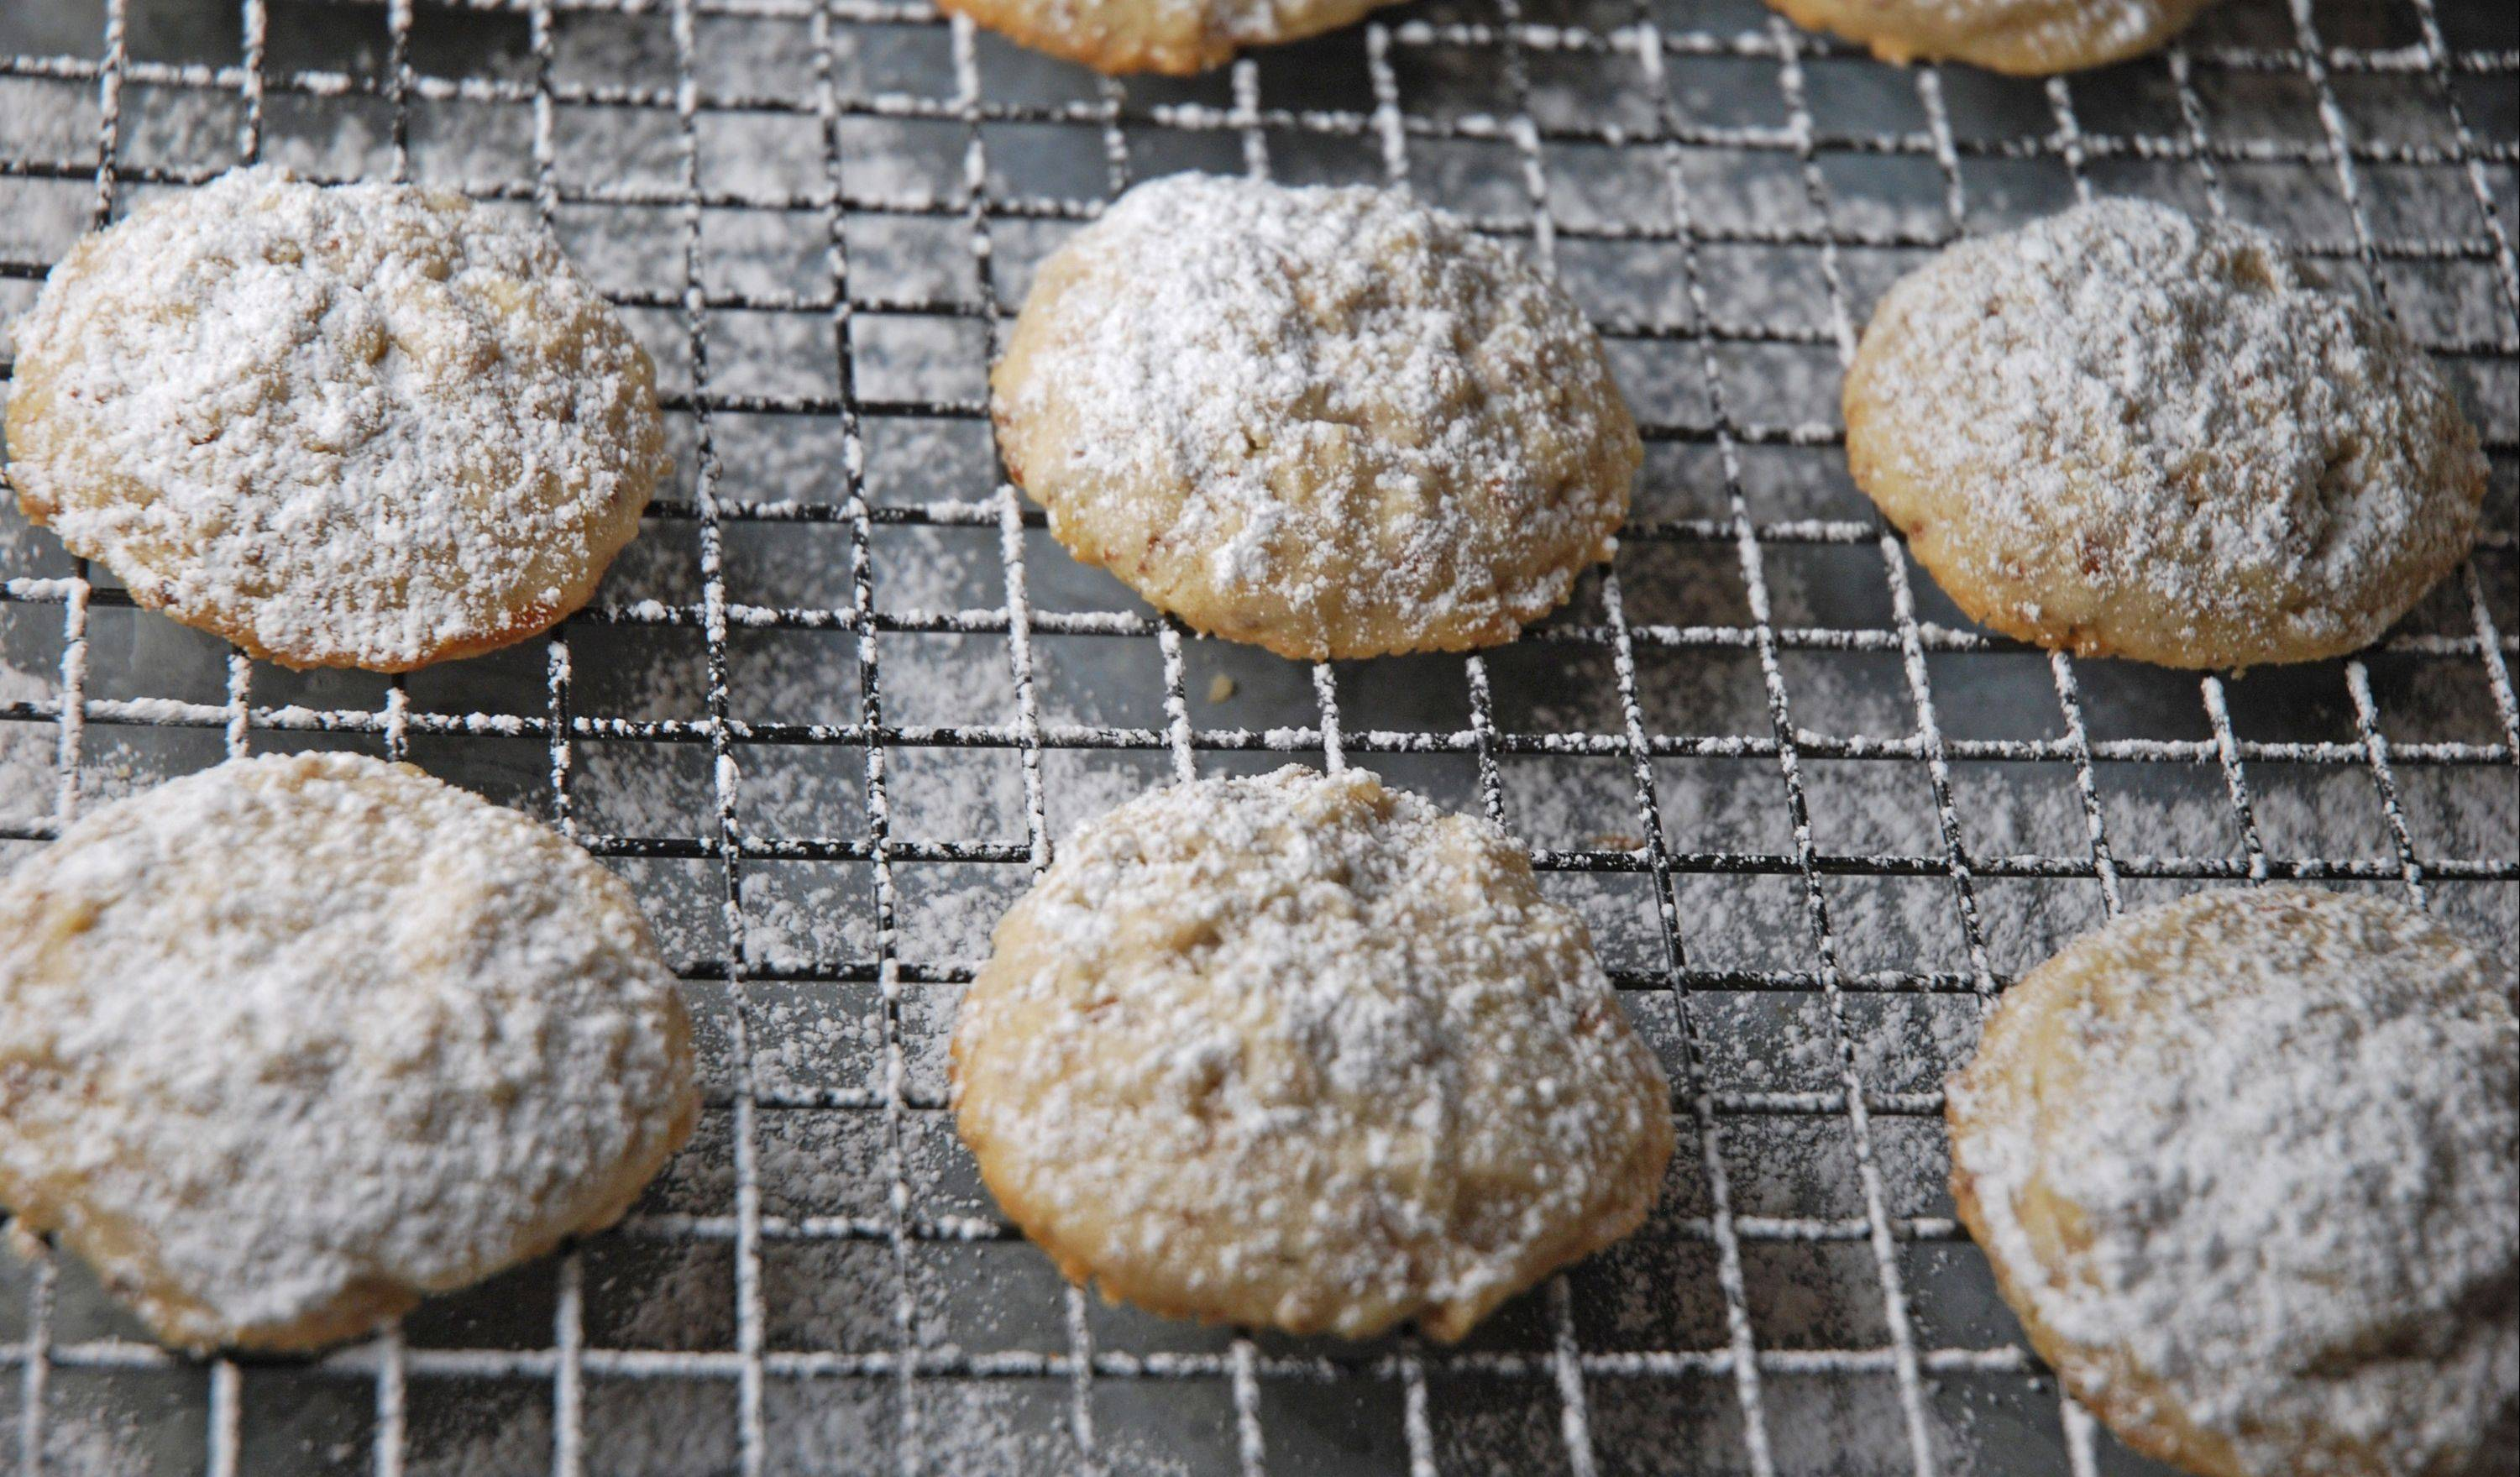 These wintry cookies are as light and delicate as a snowflake.